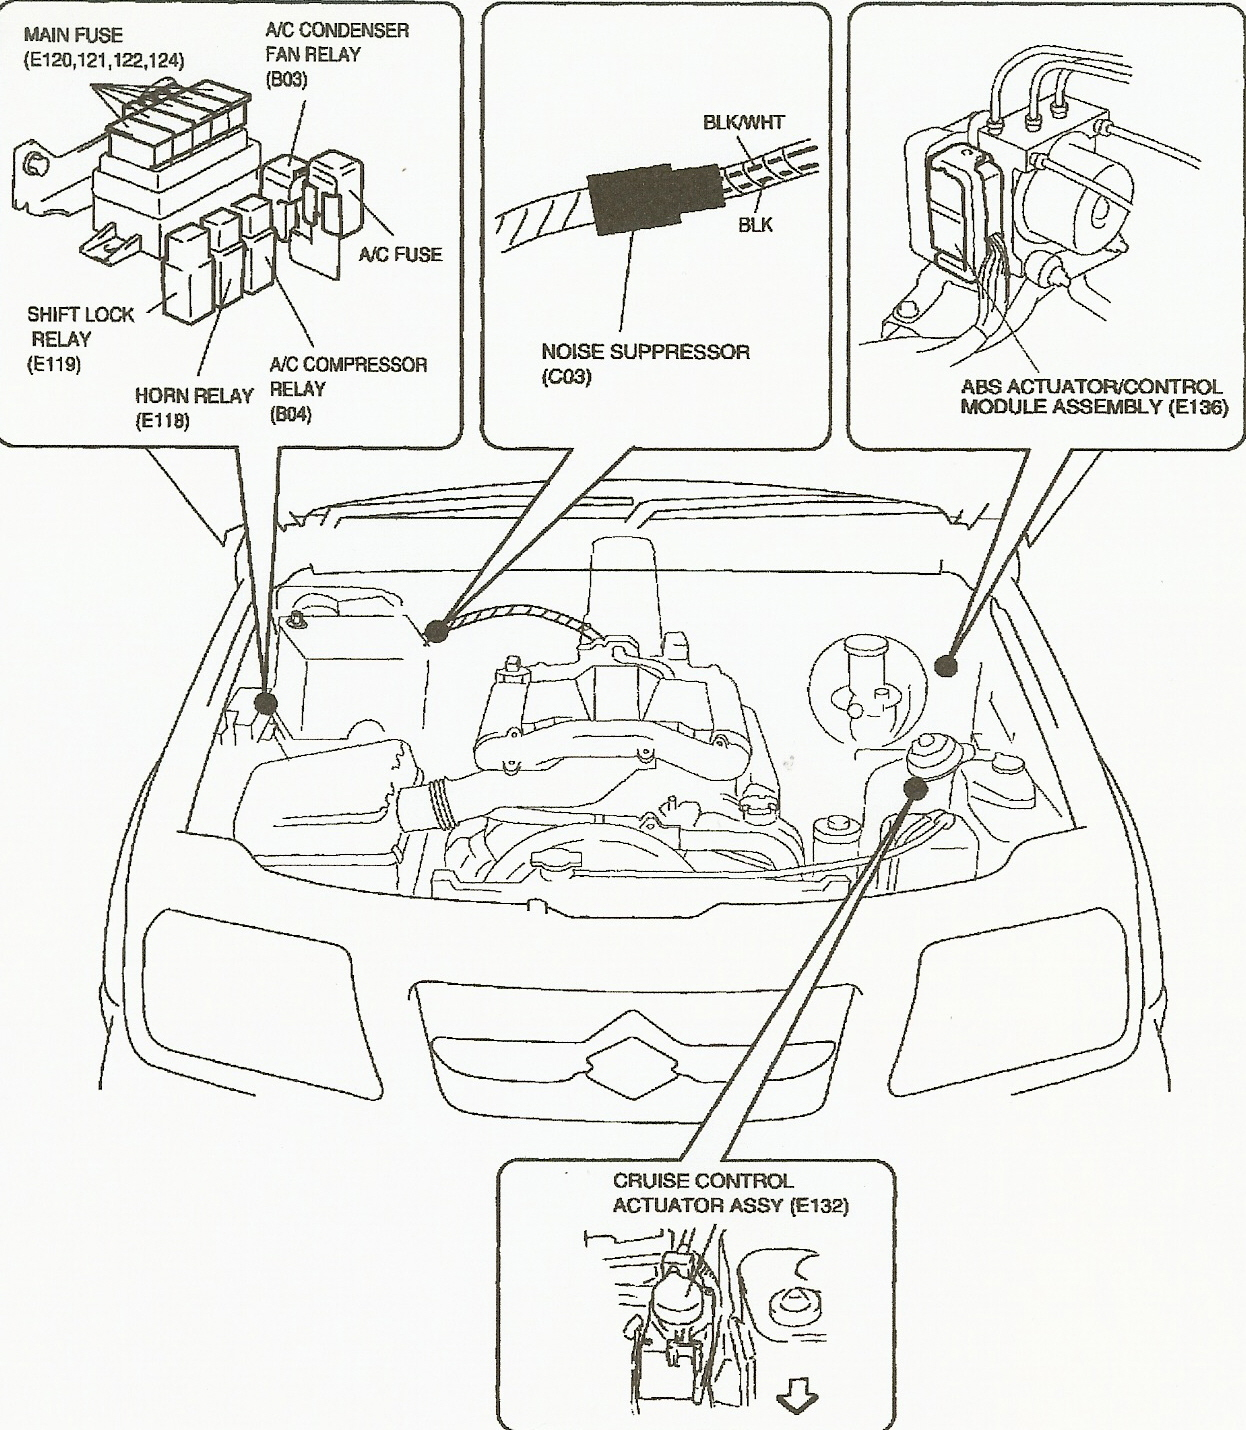 [DIAGRAM] Suzuki Grand Vitara 2004 Wiring Diagram FULL